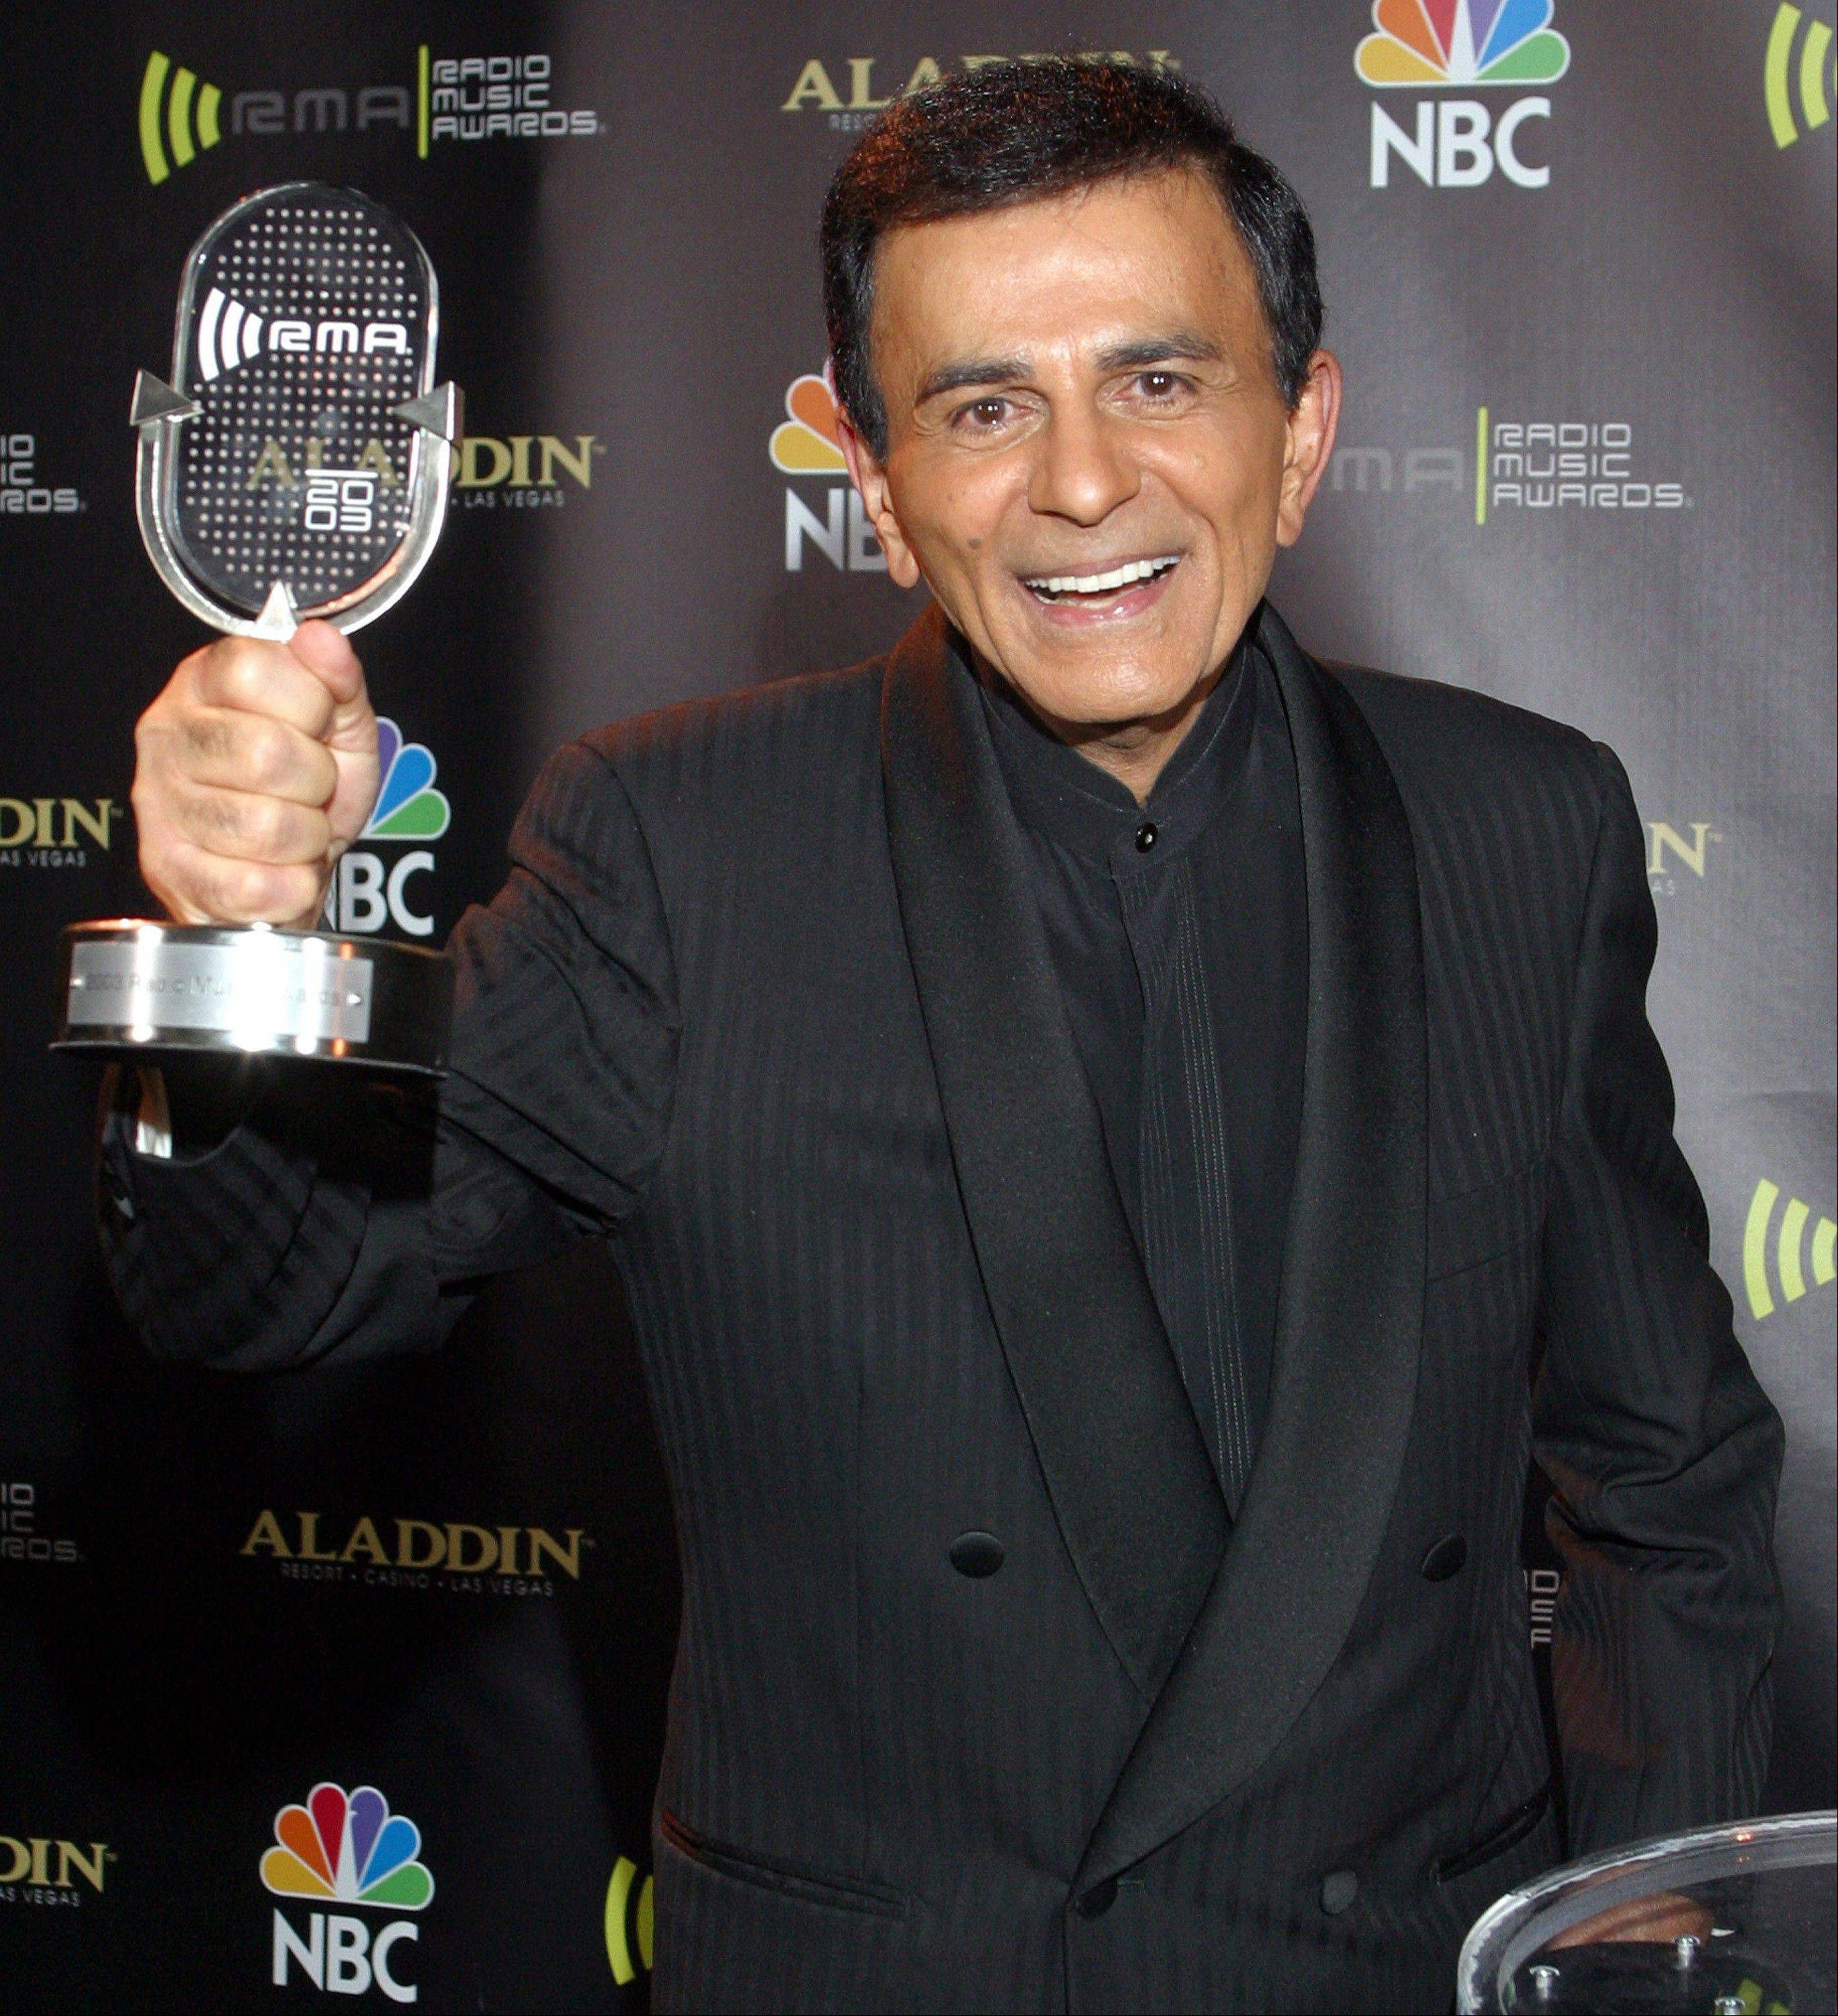 The three adult children of radio host Casey Kasem have filed a legal petition to gain control of his health care. The petition for conservatorship filed Monday, Oct. 7, 2013, brought a long-running family feud into the courts.